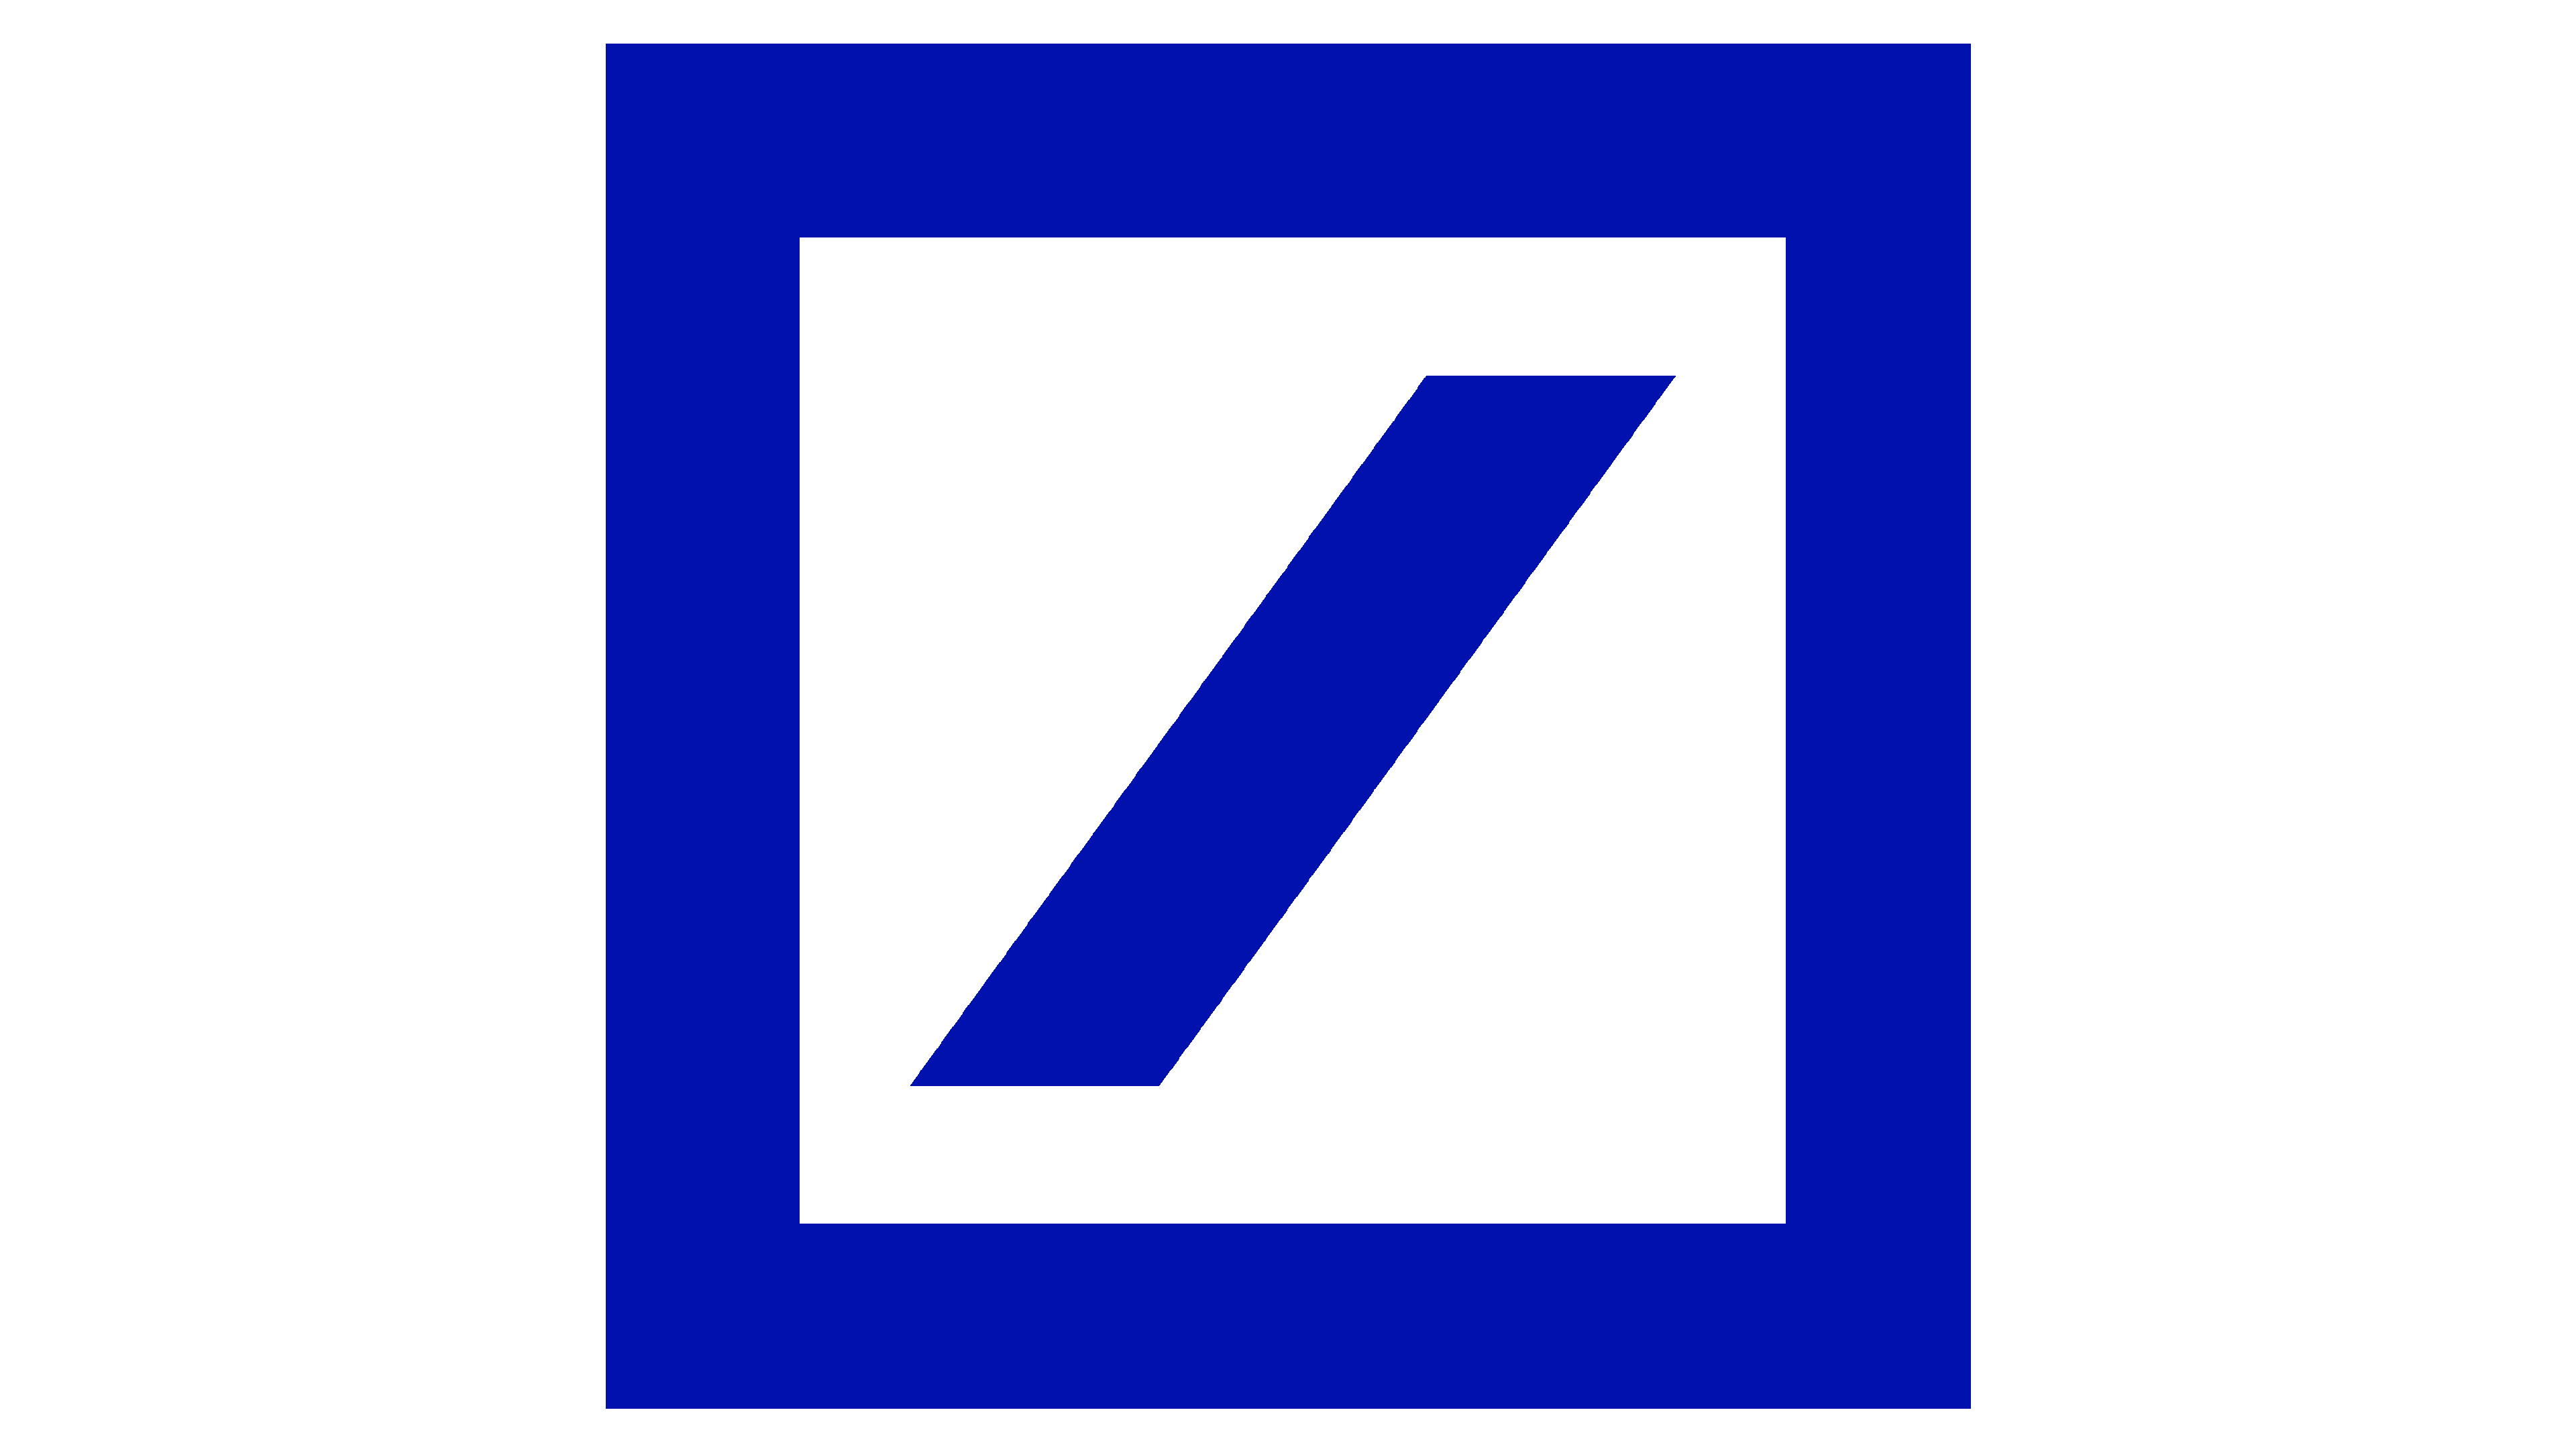 Deutsche Bank Logo Deutsche Bank Symbol Meaning History And Evolution